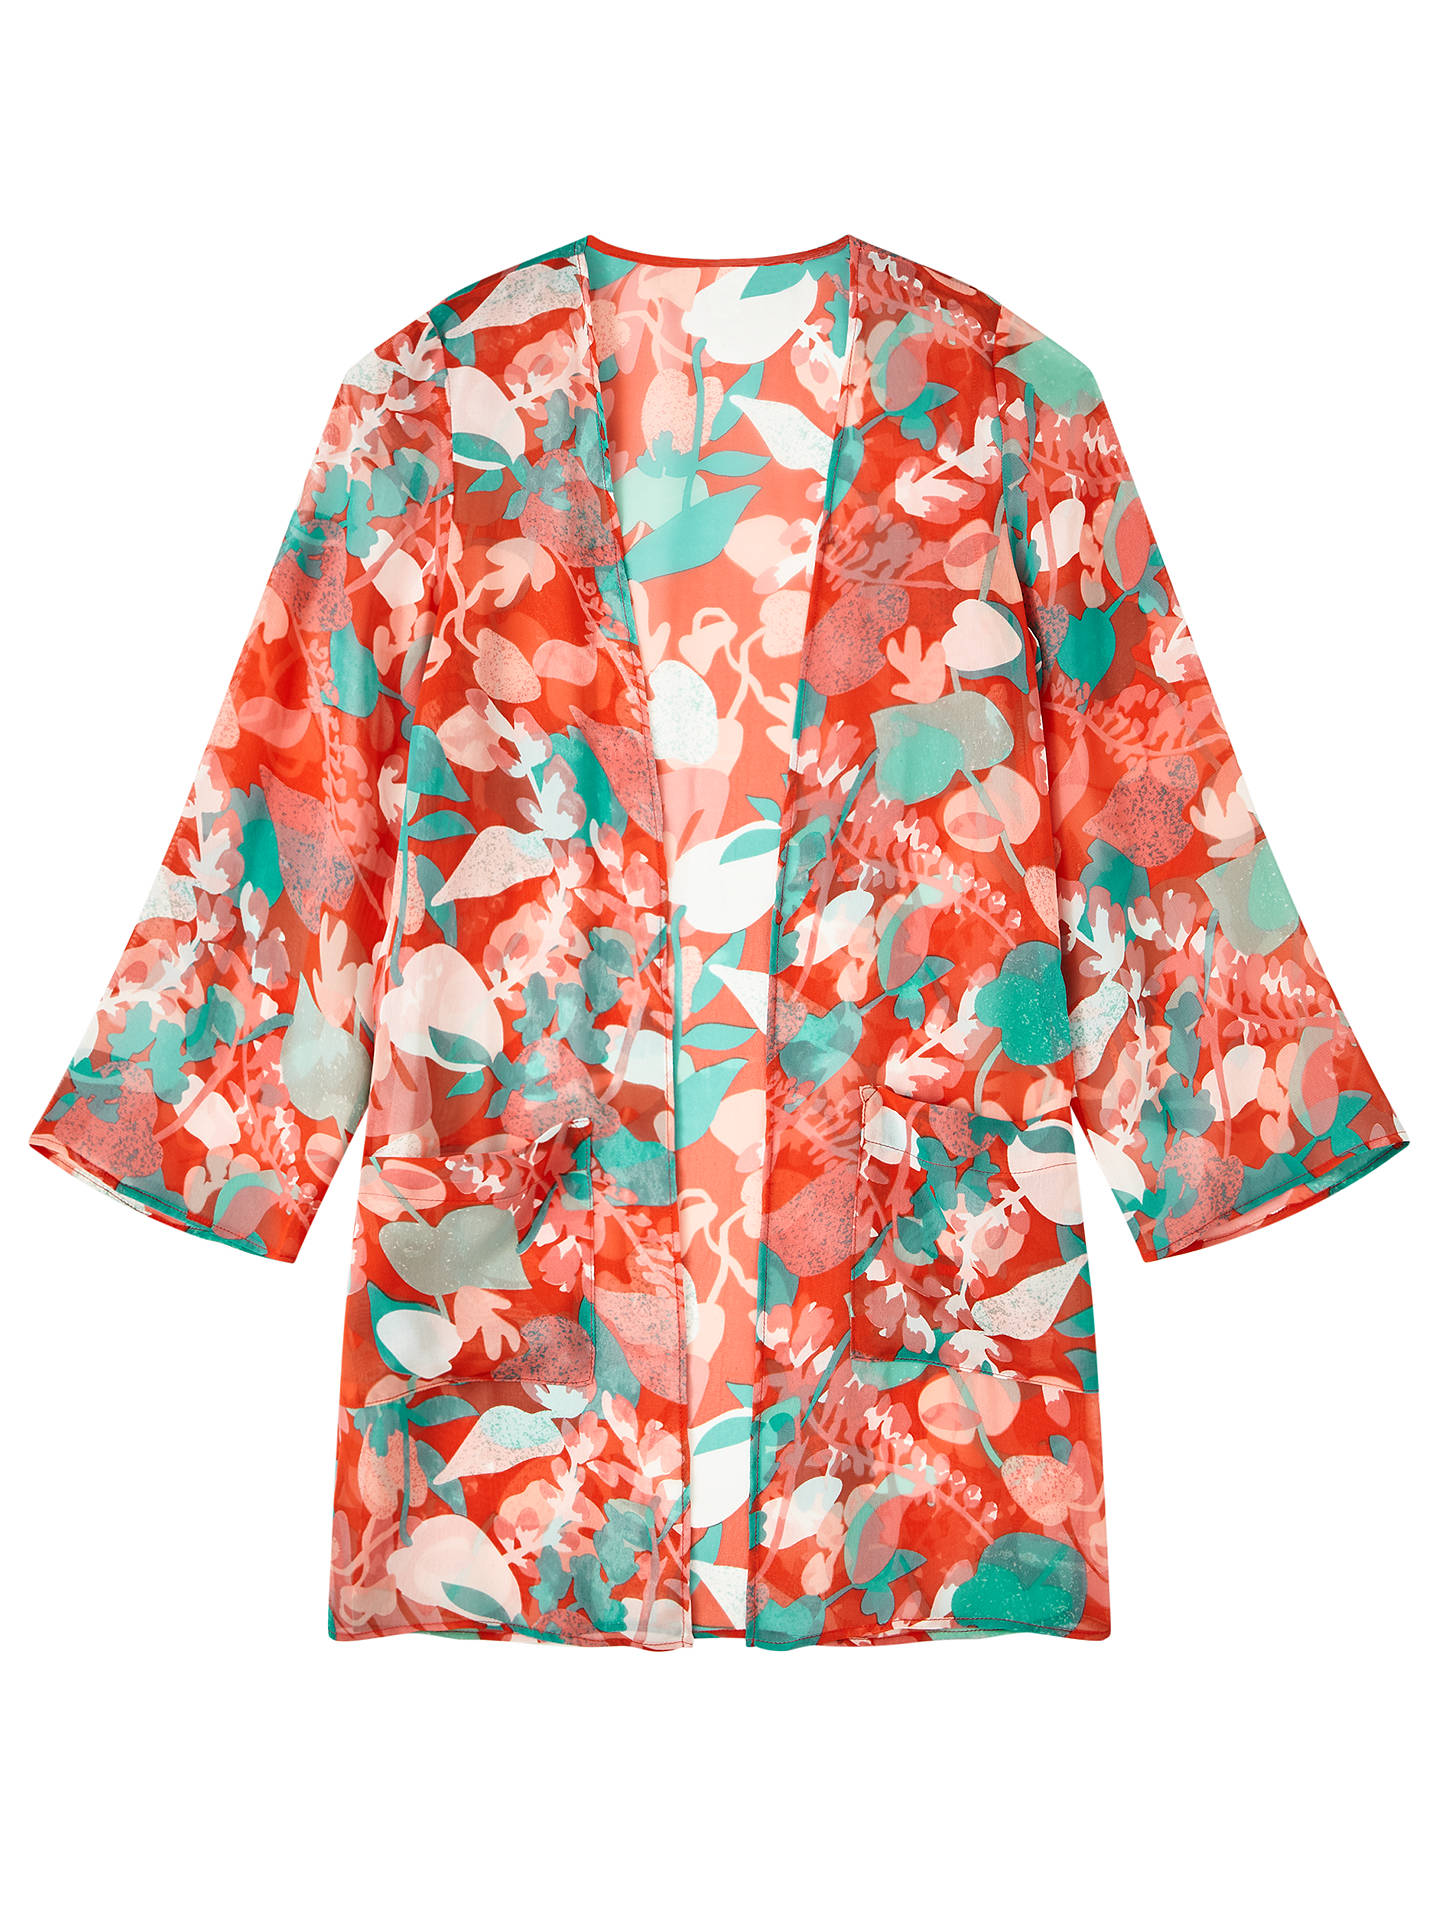 Buy John Lewis & Partners Girls' Floral Kimono Jacket Top, Multi, 14 years Online at johnlewis.com